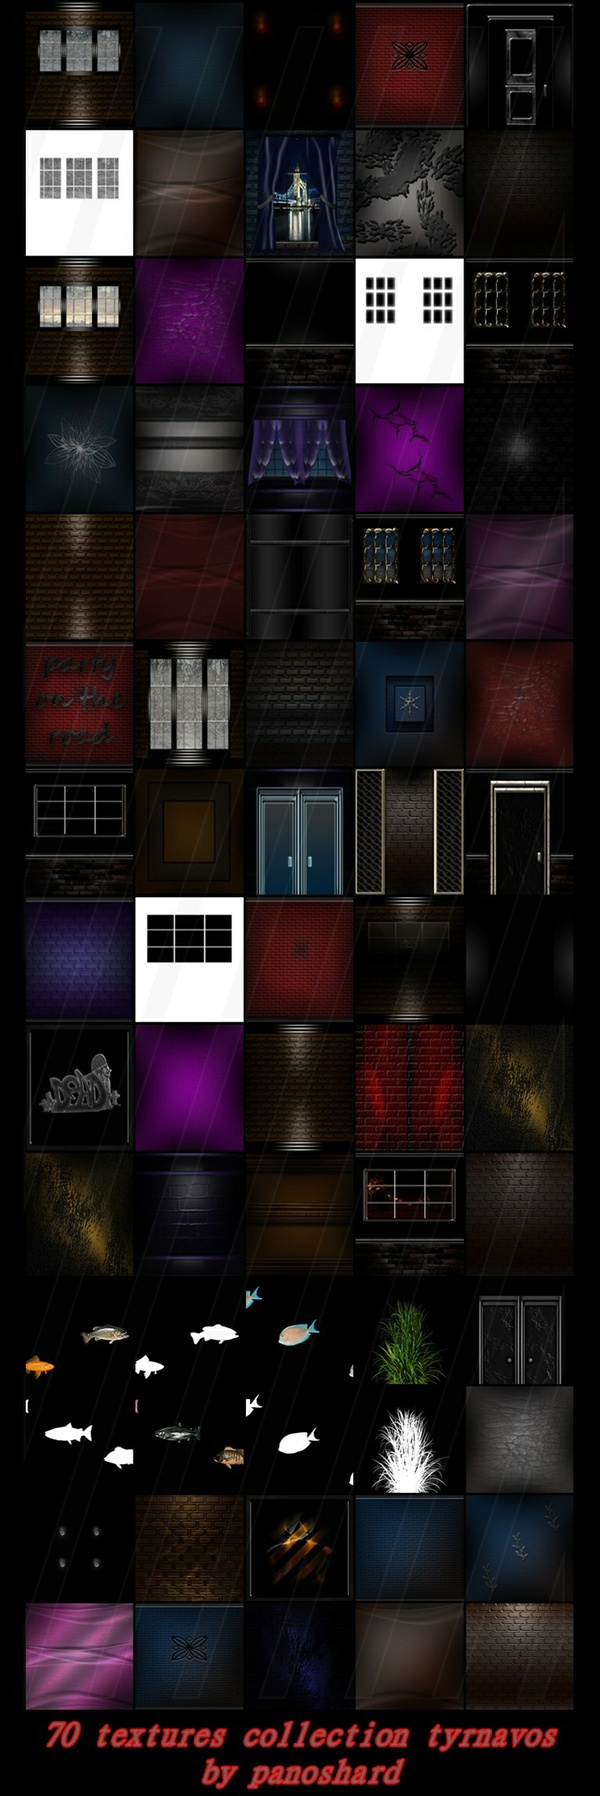 70 textures collection tyrnavos  offer today 5$